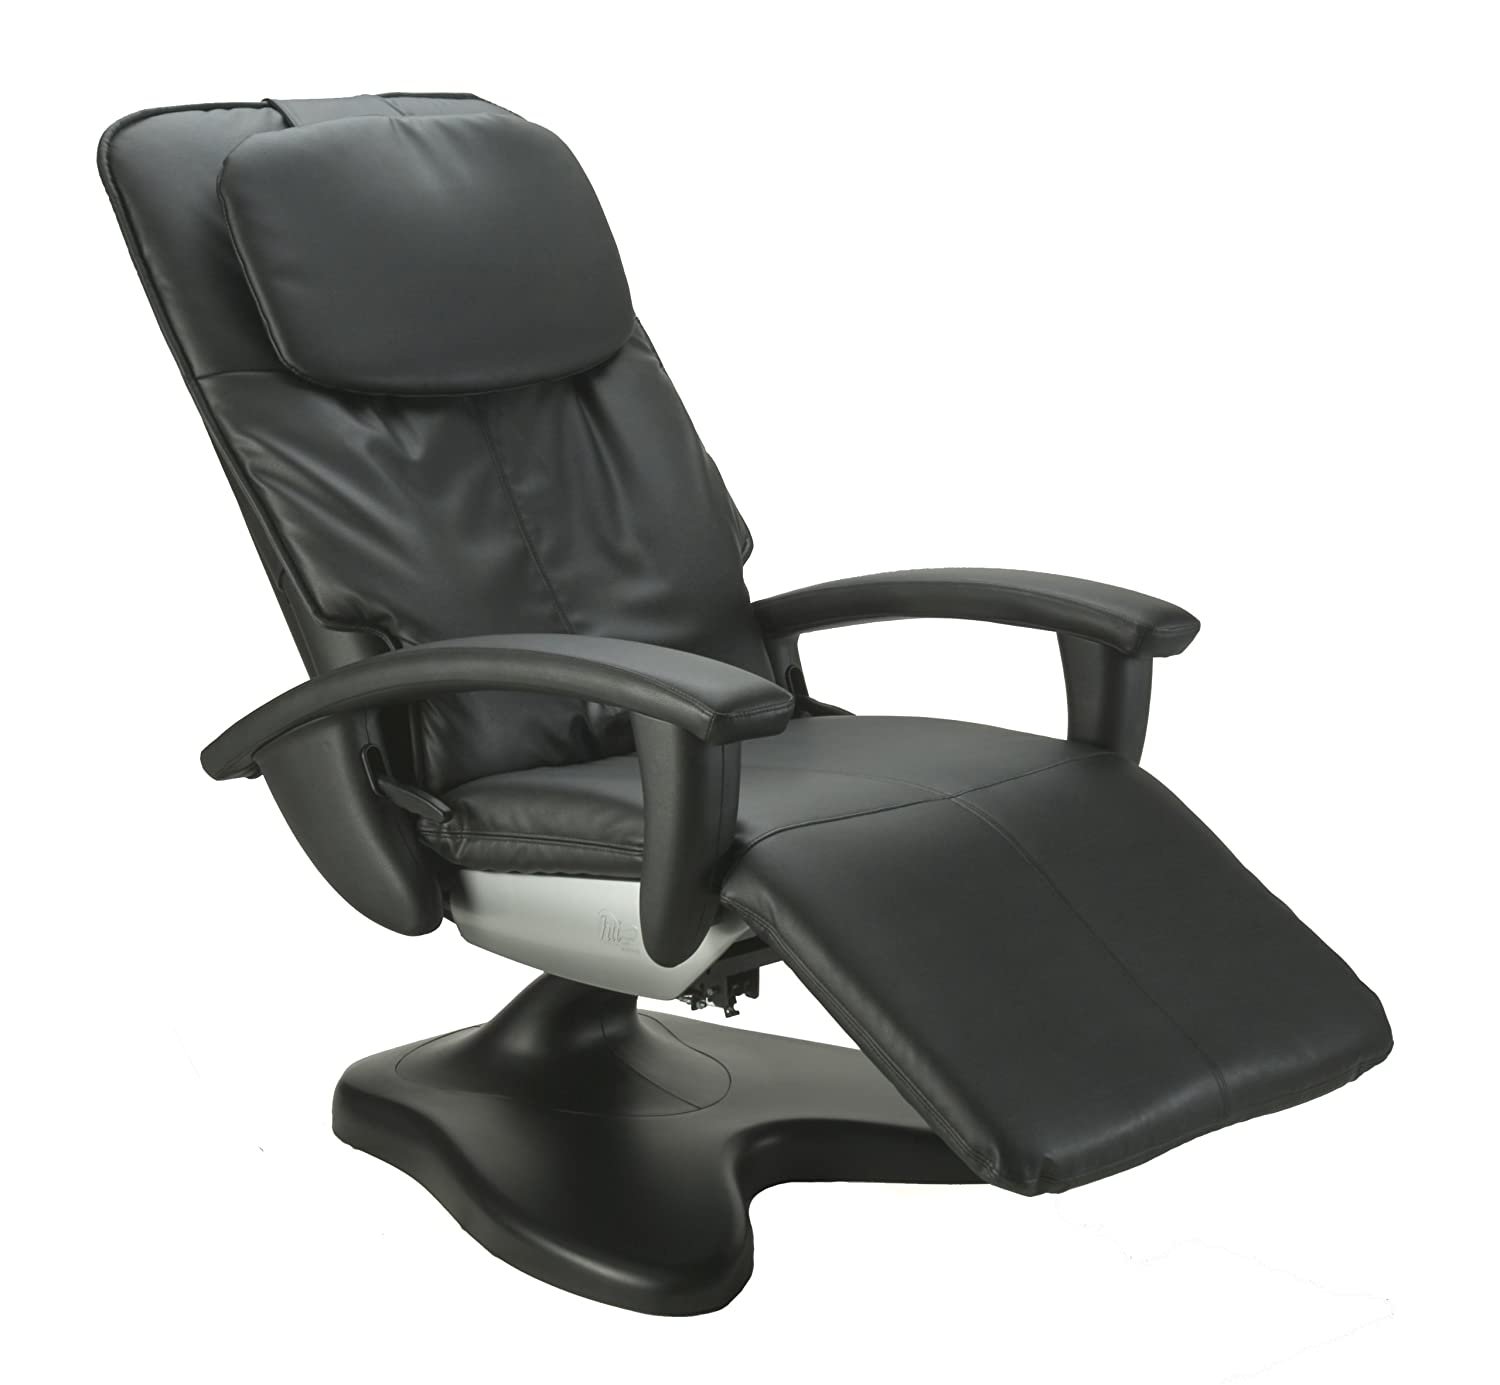 recline emassagechair massage chair zerog human black com touch